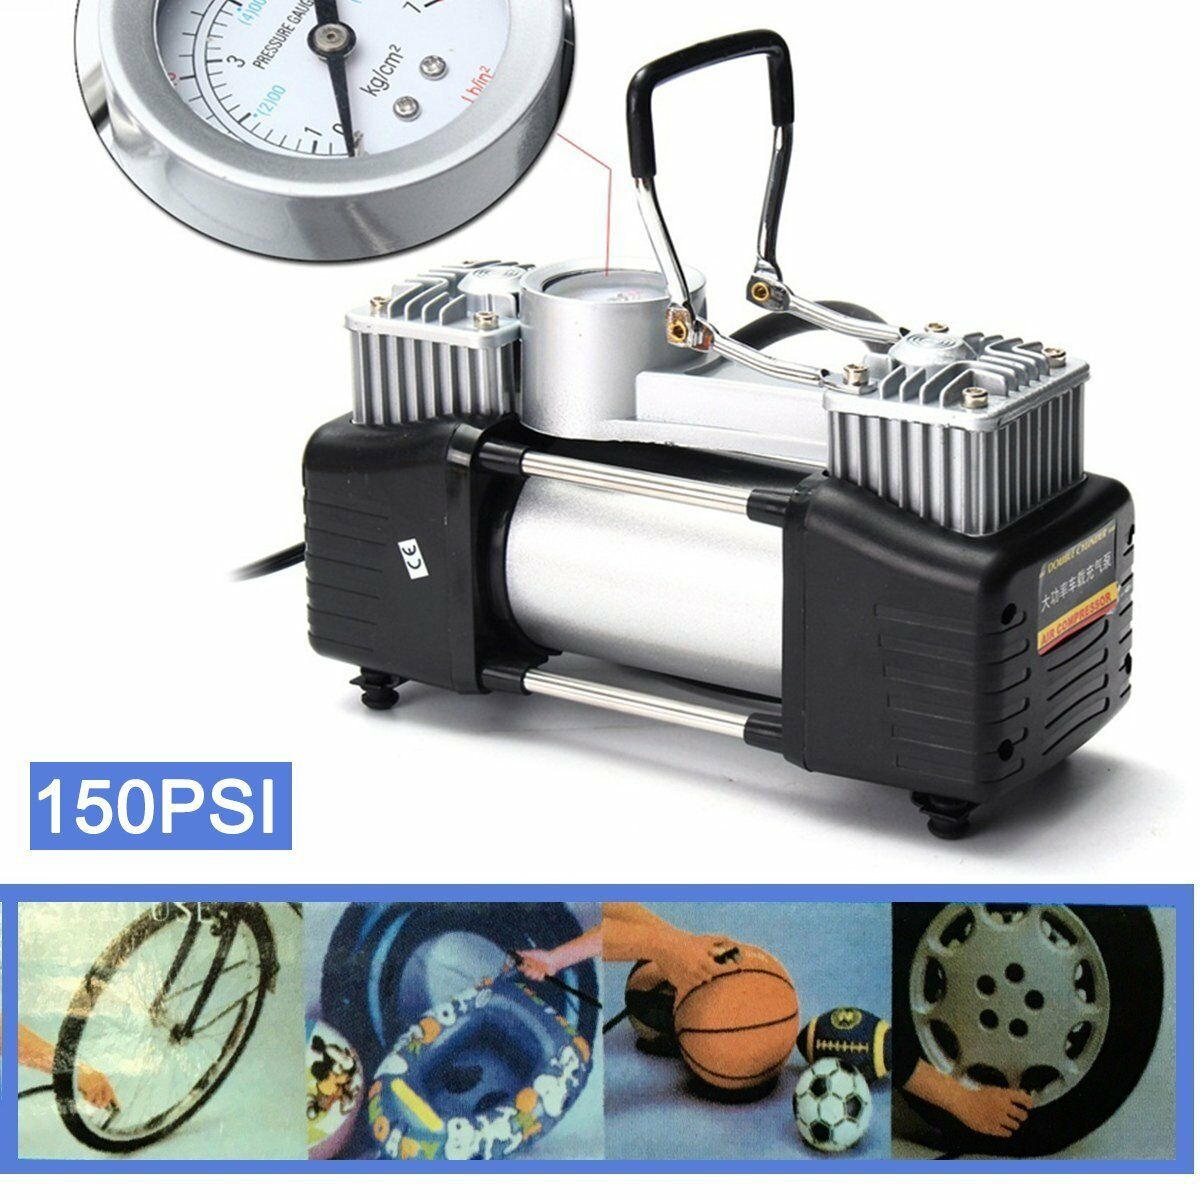 12V 150PSI Heavy Duty Double Cylinder Air Pump Compressor Car Tyre Inflator 8G